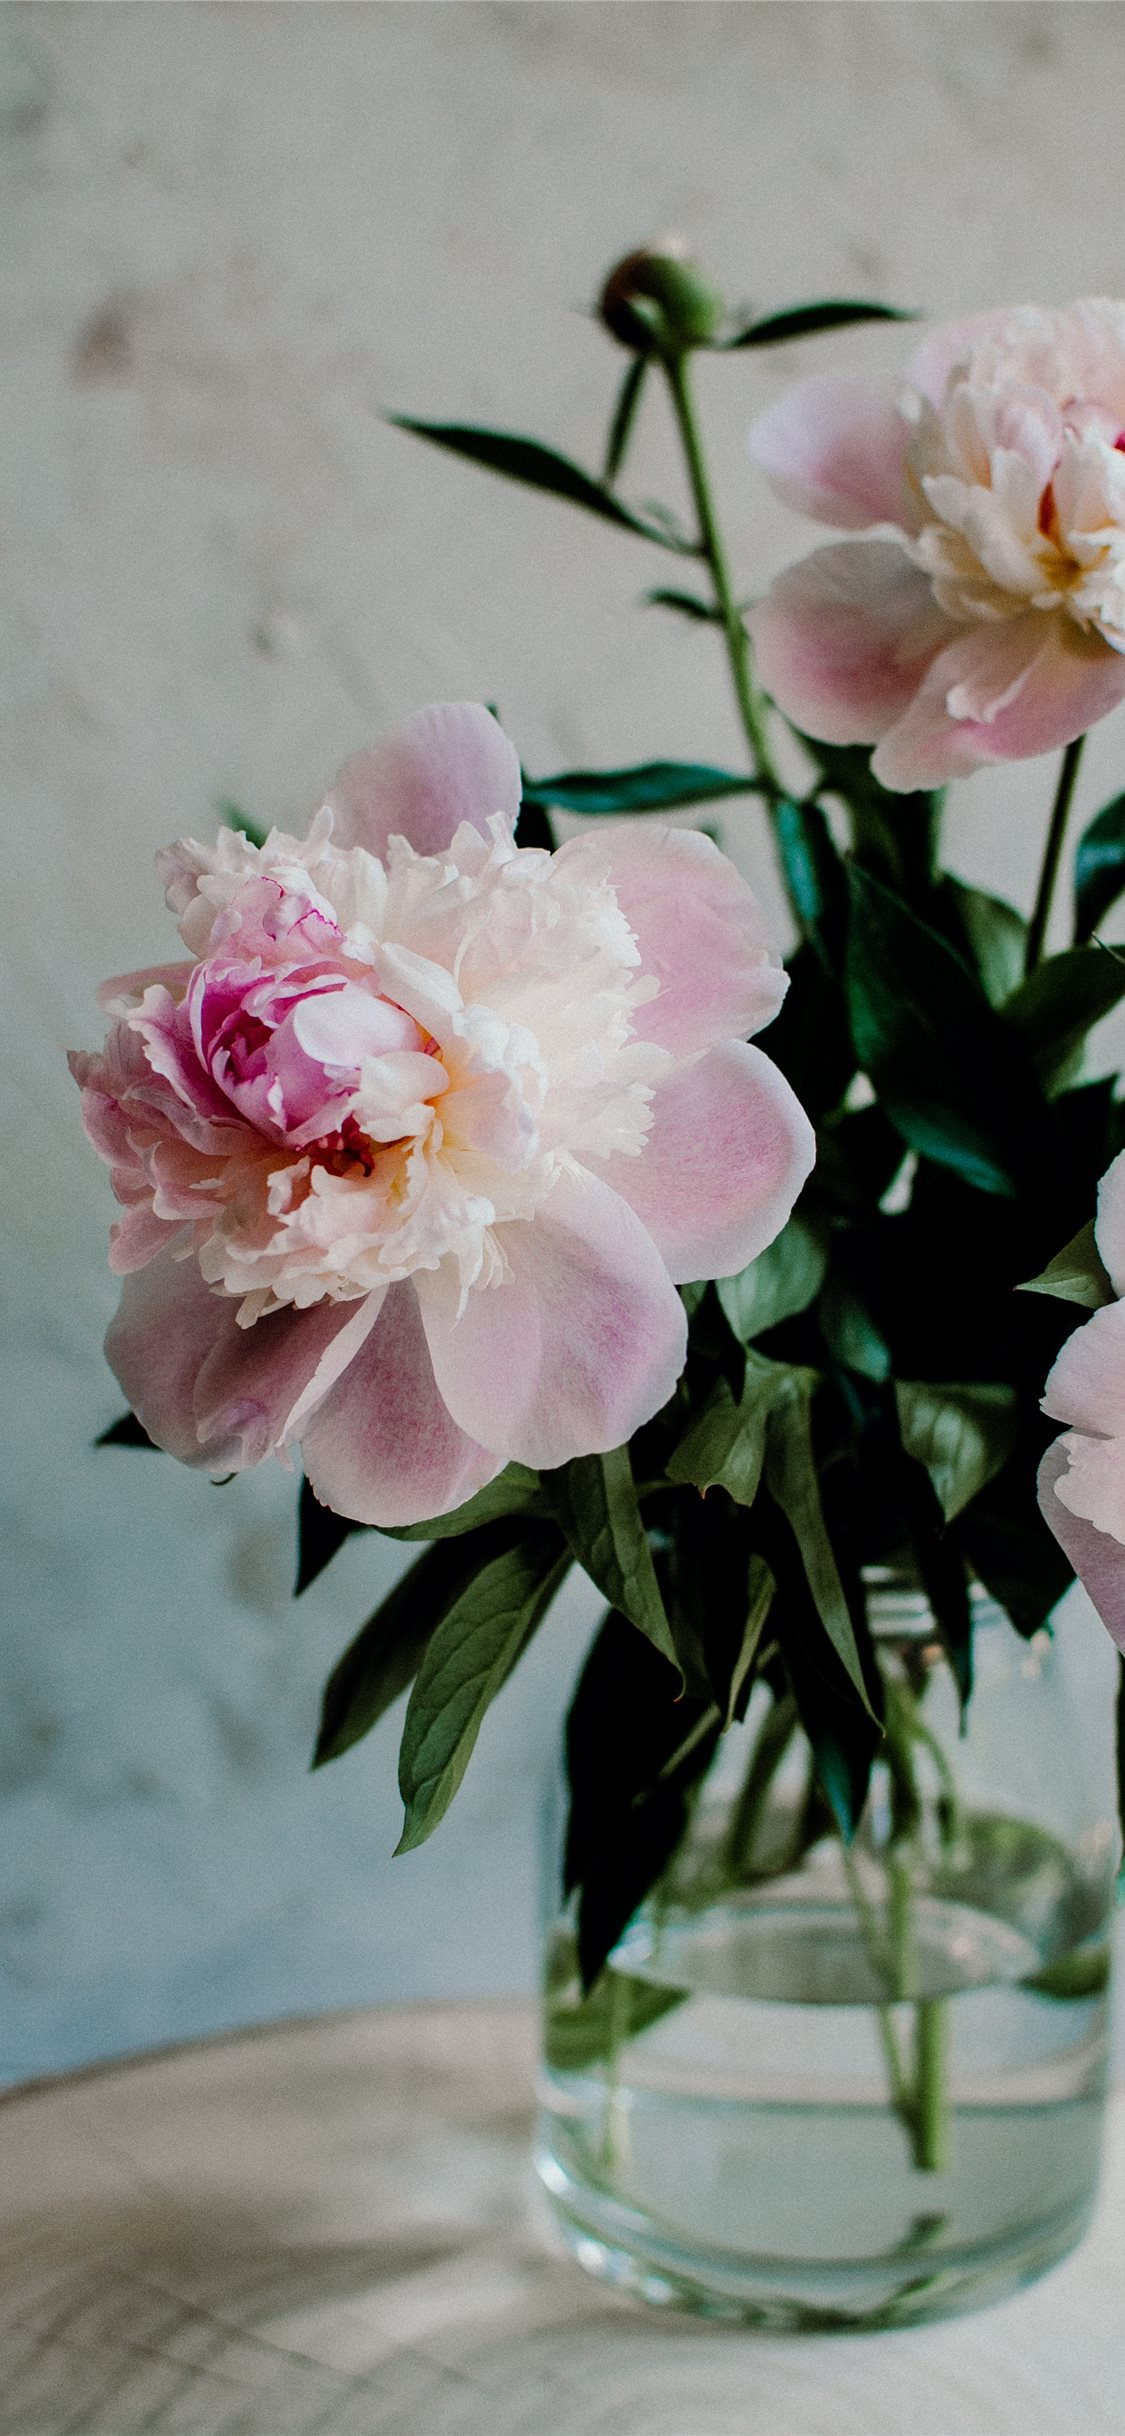 blossom pink peonies iphone 8 wallpaper download | iphone wallpapers